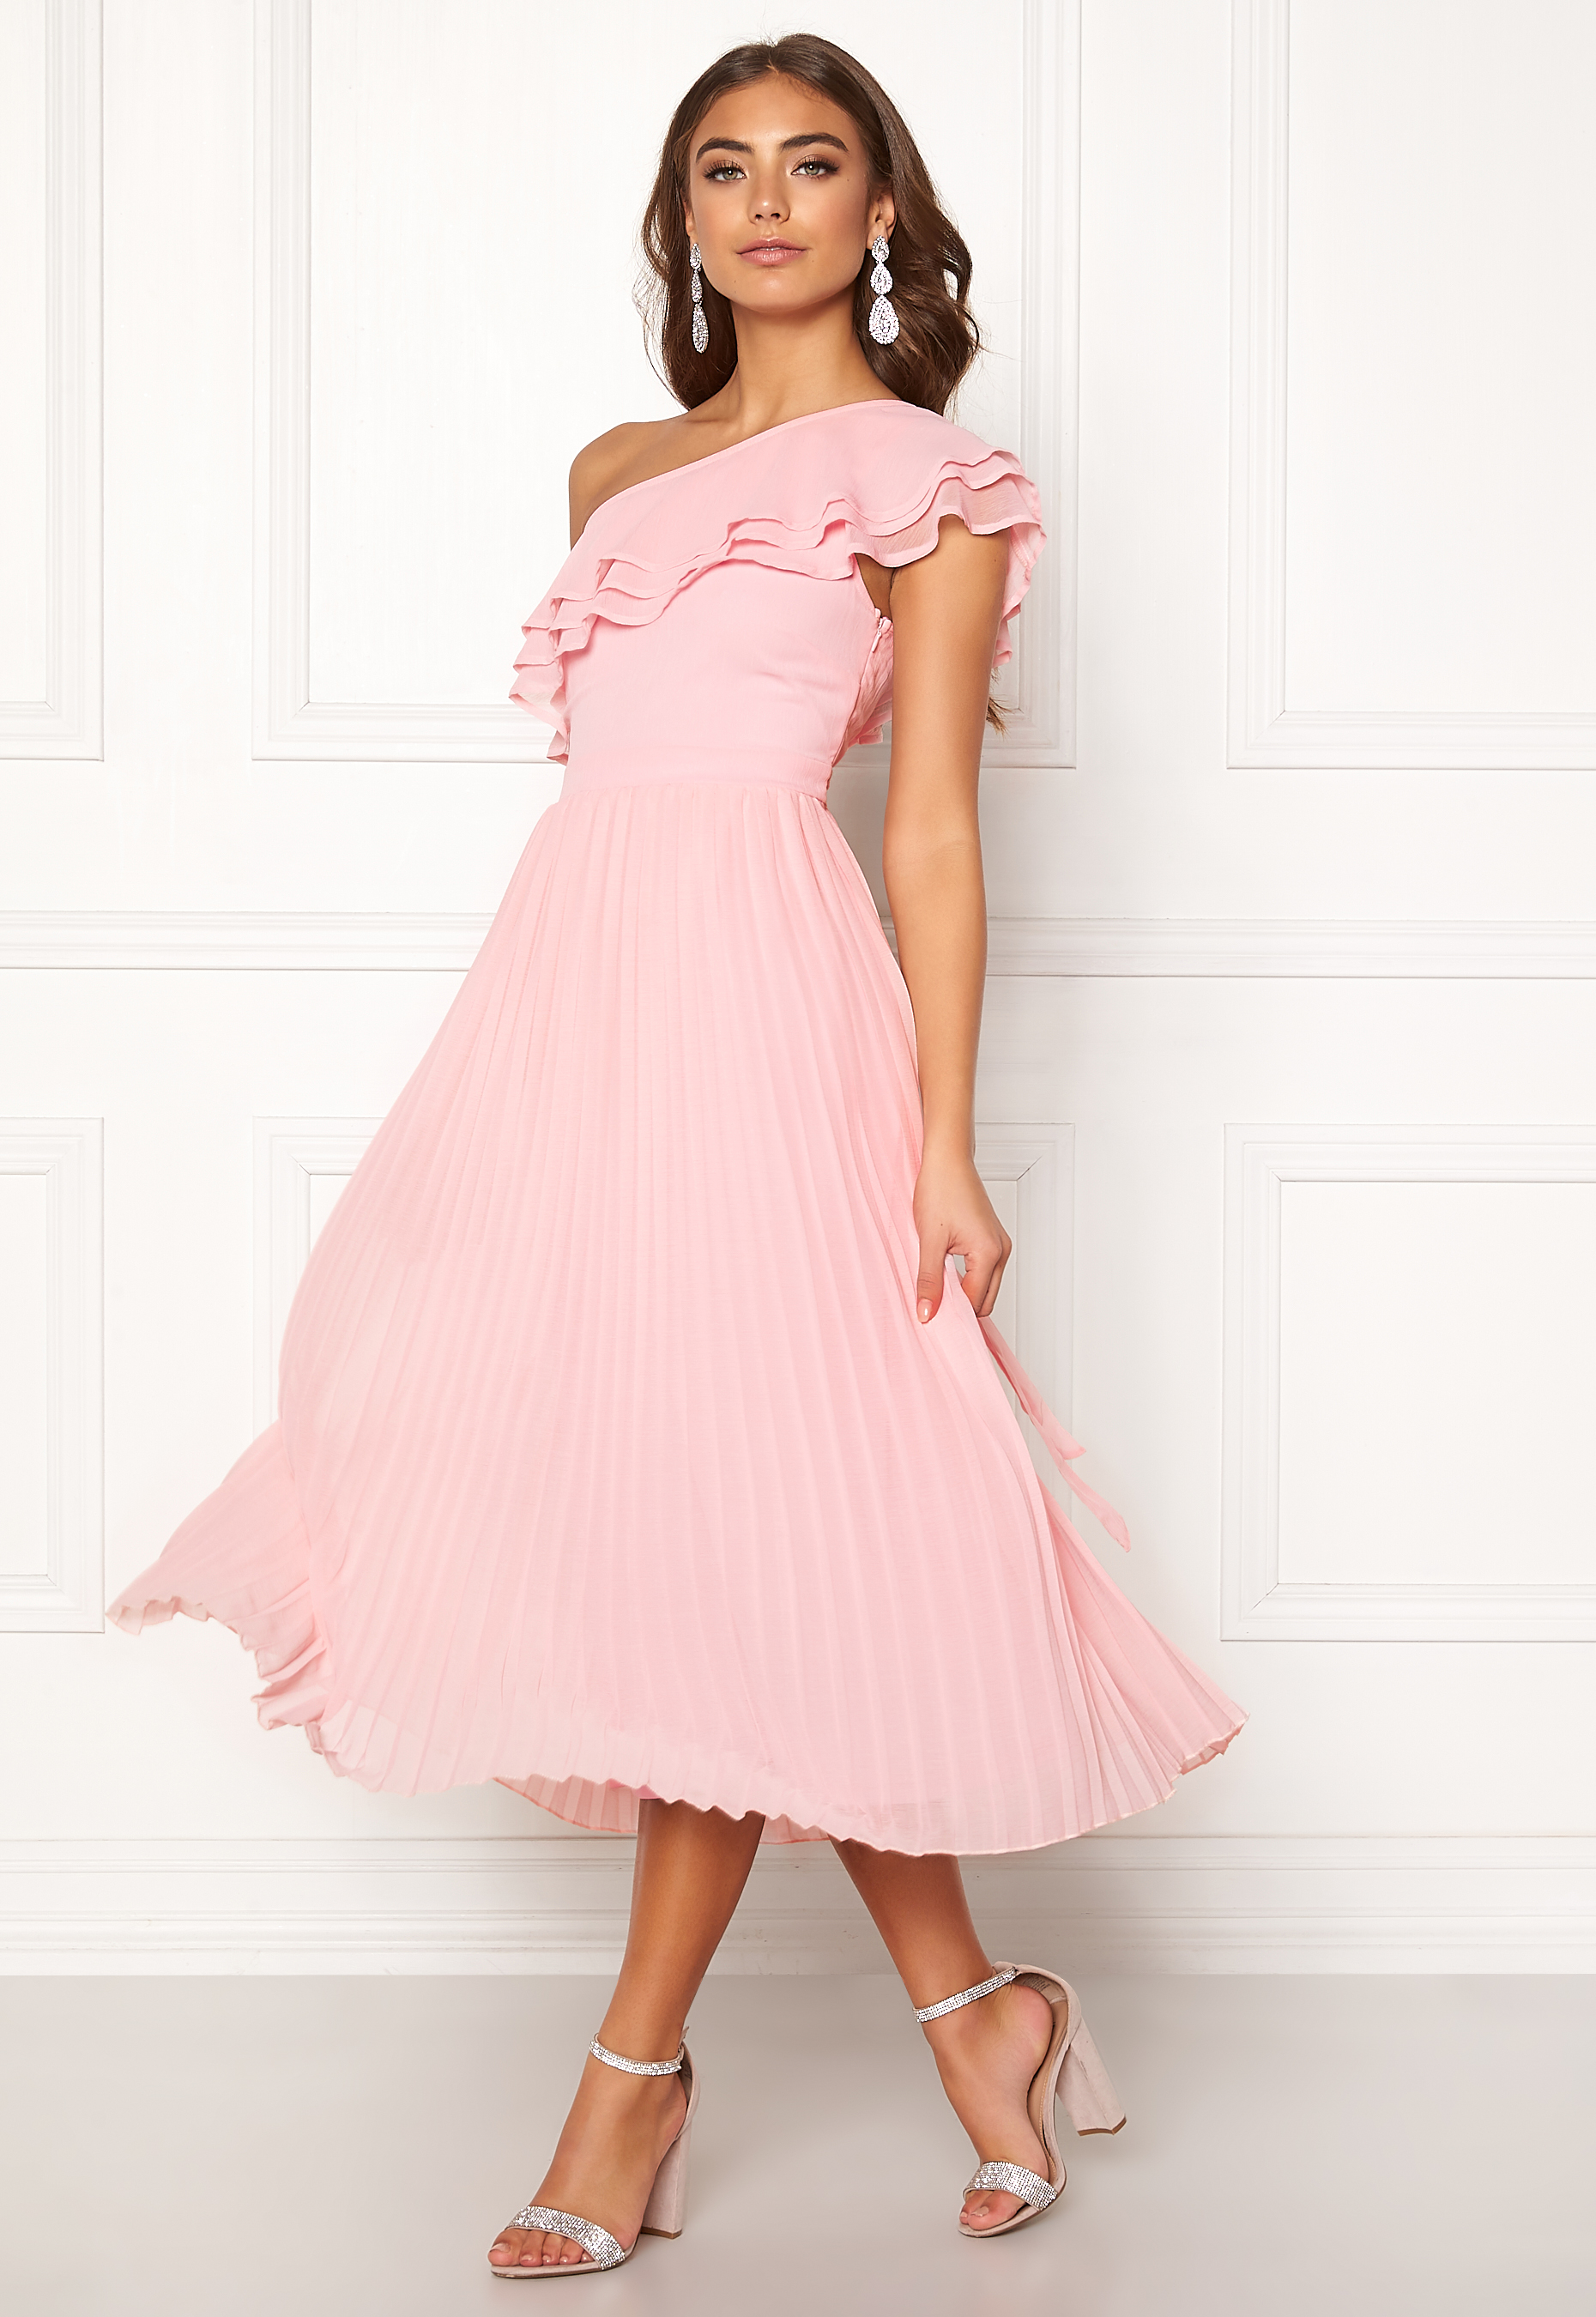 509b8a88b78a BUBBLEROOM Carolina Gynning Frill one shoulder dress Light pink ...